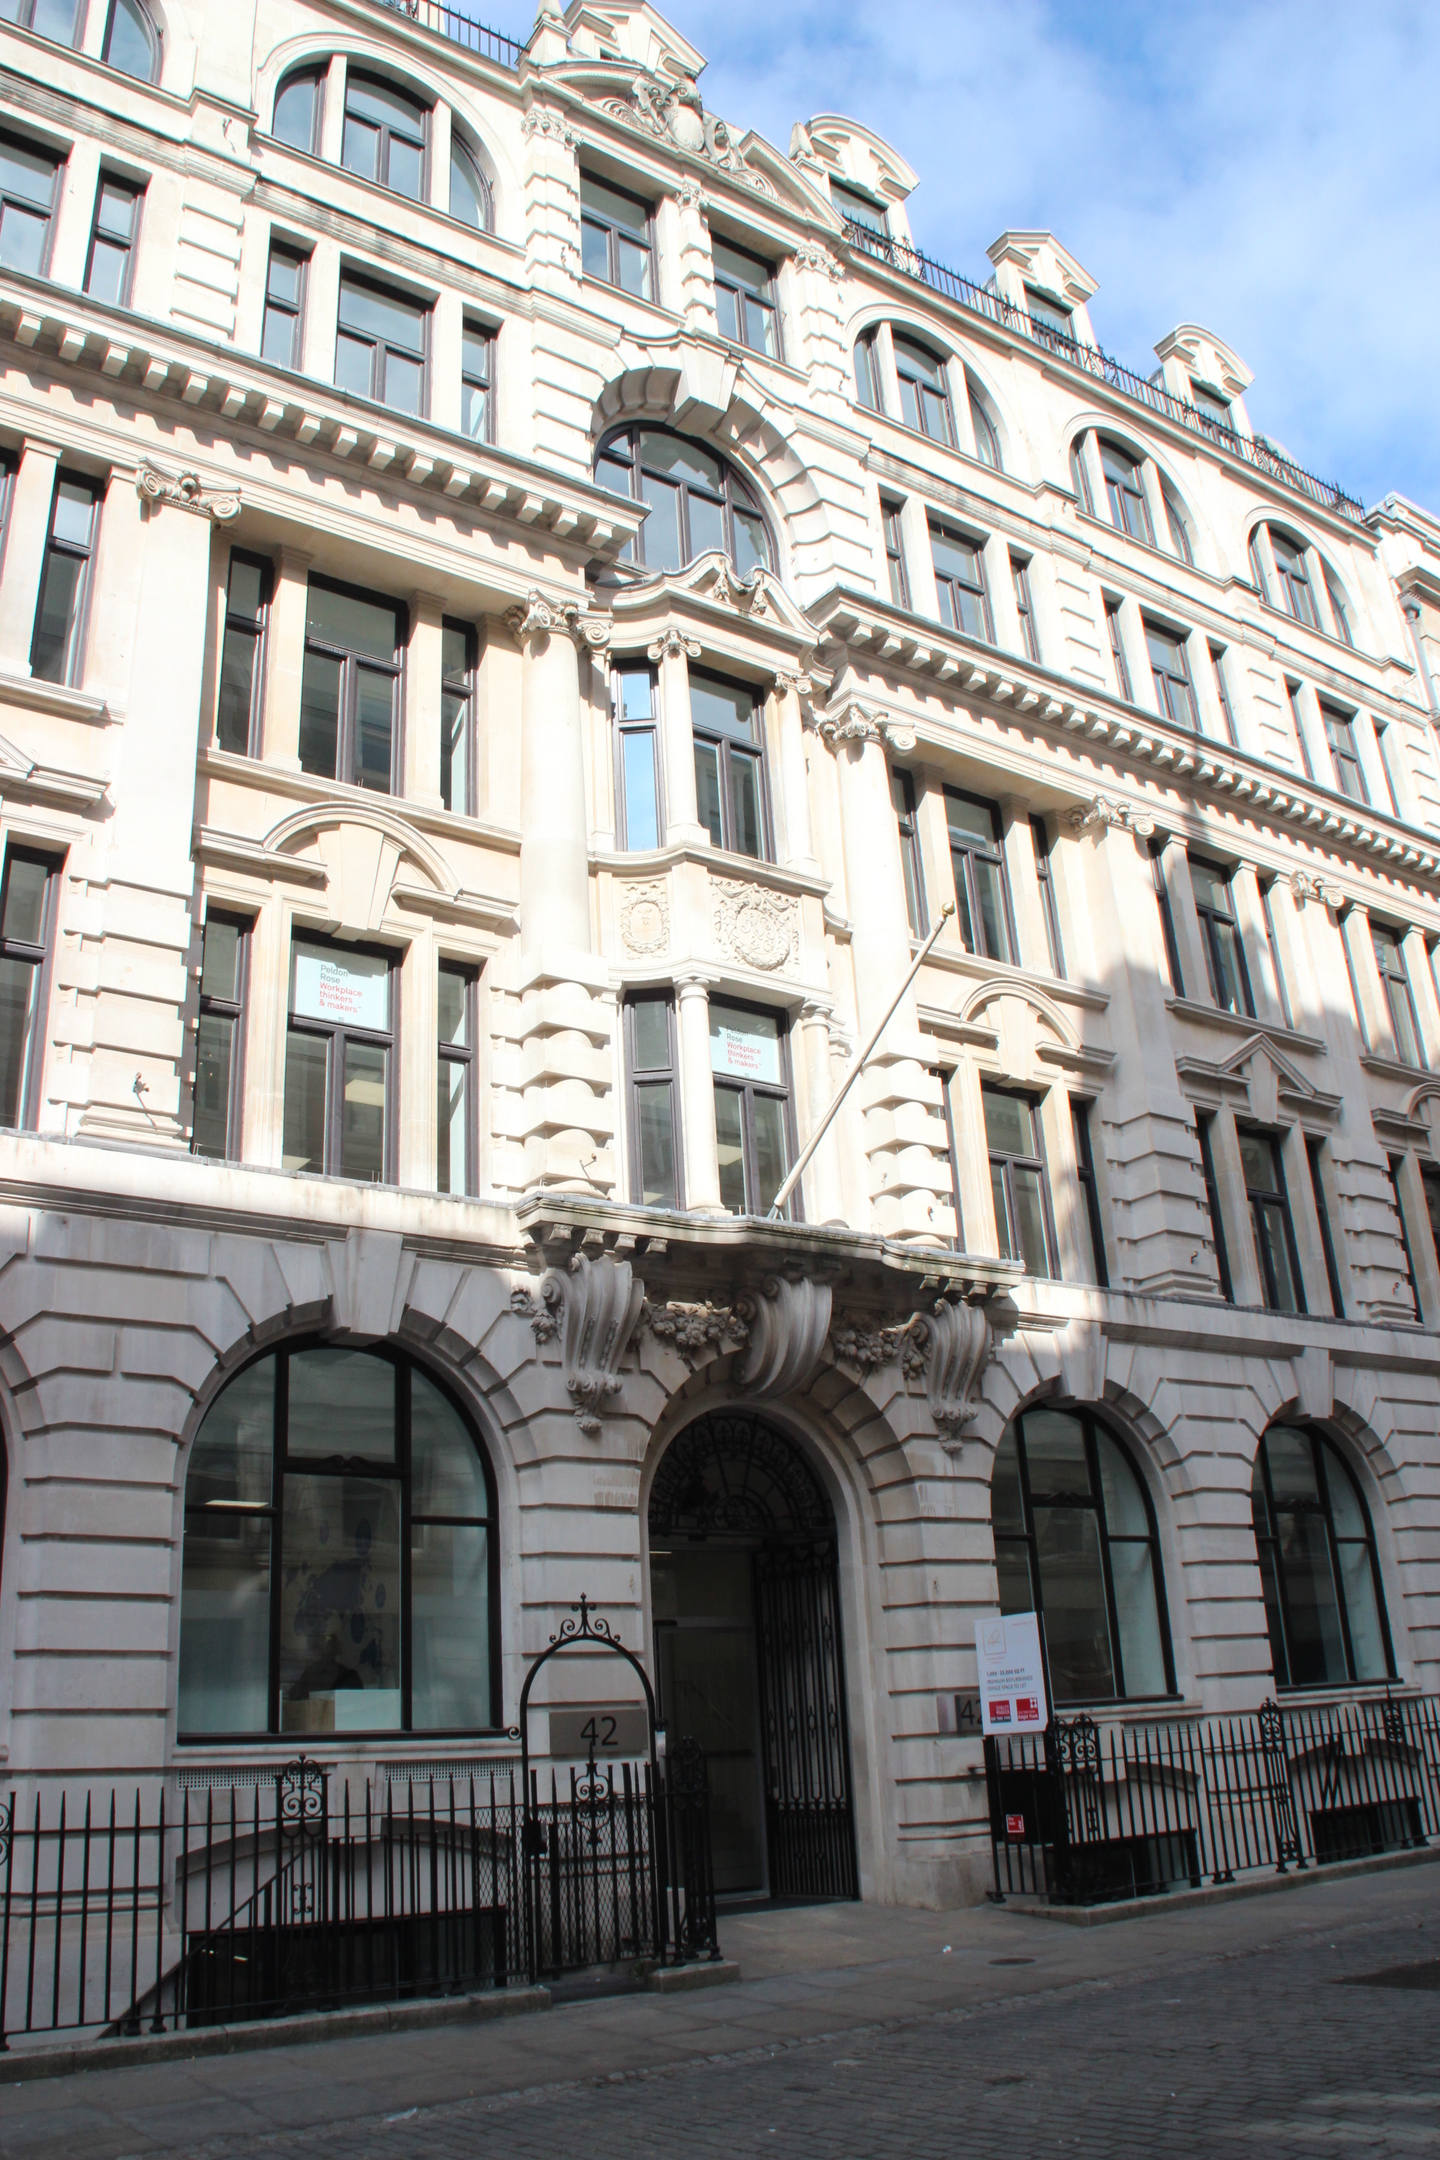 Airswift and Ducatus' new office in London